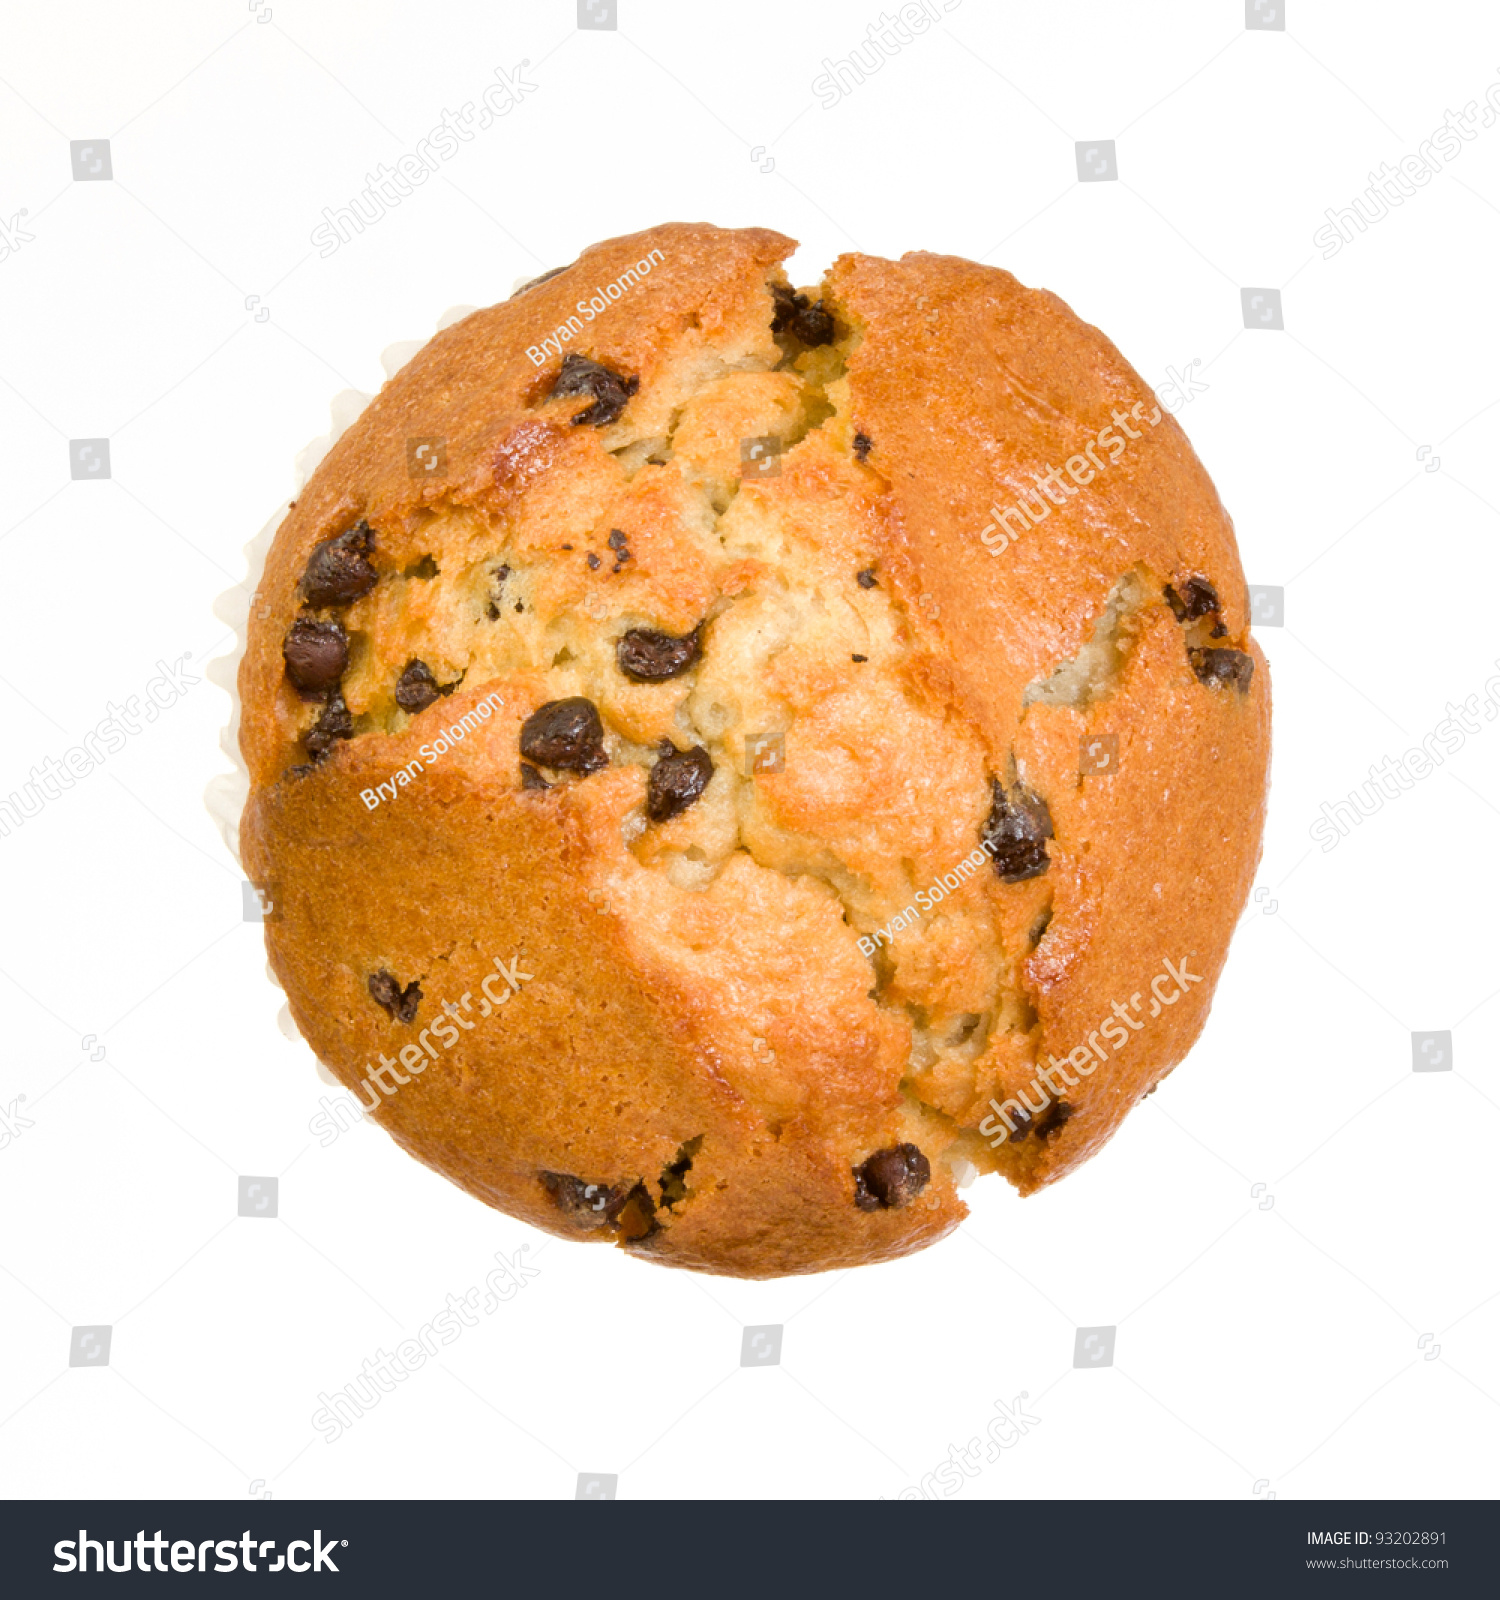 Chocolate Chip Muffin From Top View Isolated On A White Background